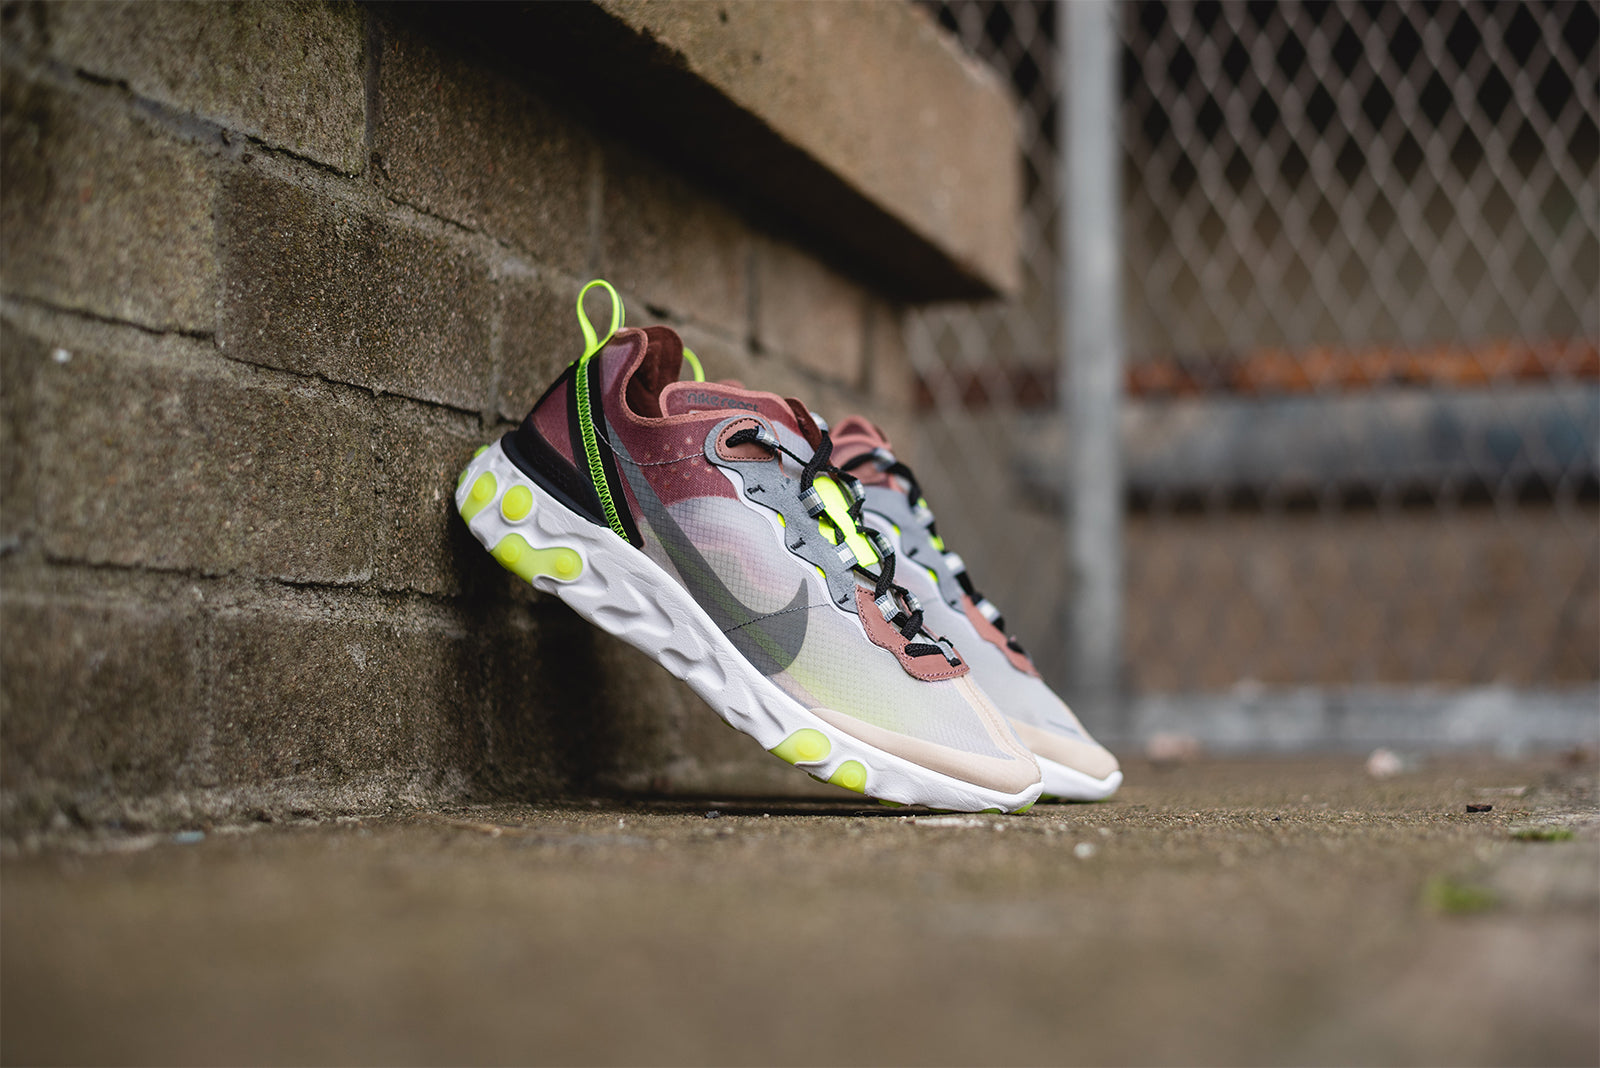 f2722a4381fa Nike React Element 87. AQ1090-002. DESERT SAND COOL GREY-SMOKEY MAUVE  Price  £135.00. Launch  Thursday 16th of August ONLINE  08 00BST